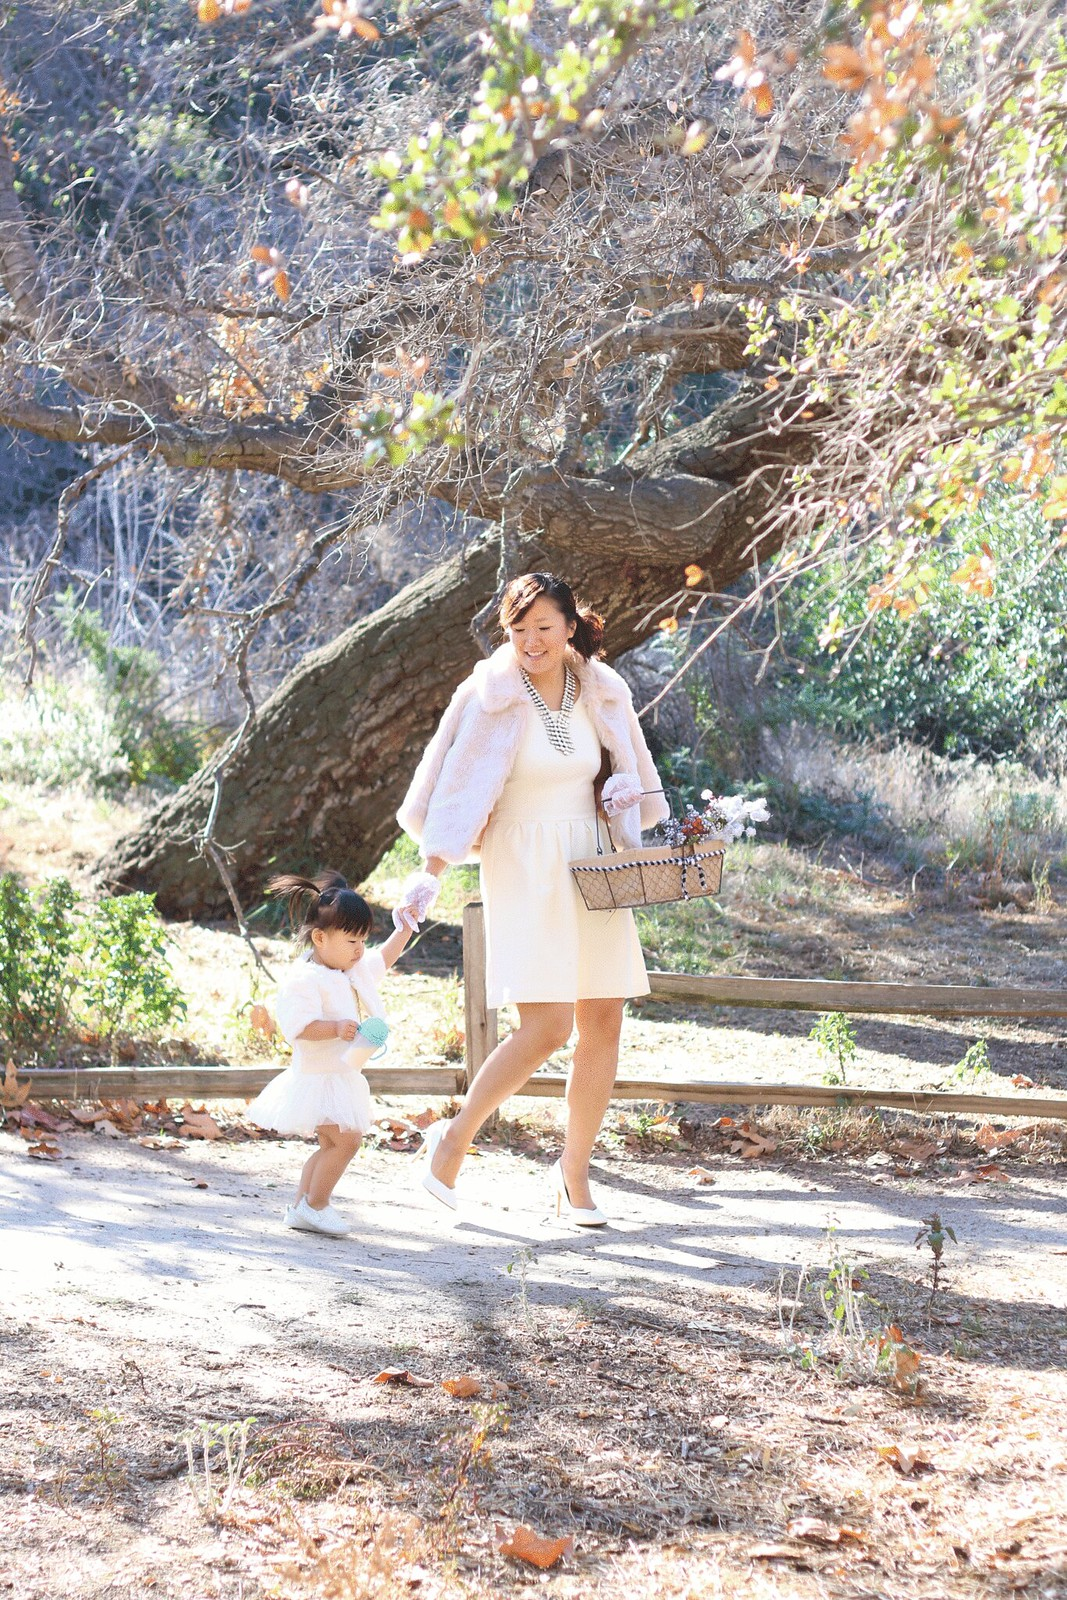 simplyxclassic, winter wonderland, holiday, christmas outfit, banana republic, faux fur, mommy and me, matching outfits, baby girl, mom blogger, fashion blog, style, orange county, ootd,